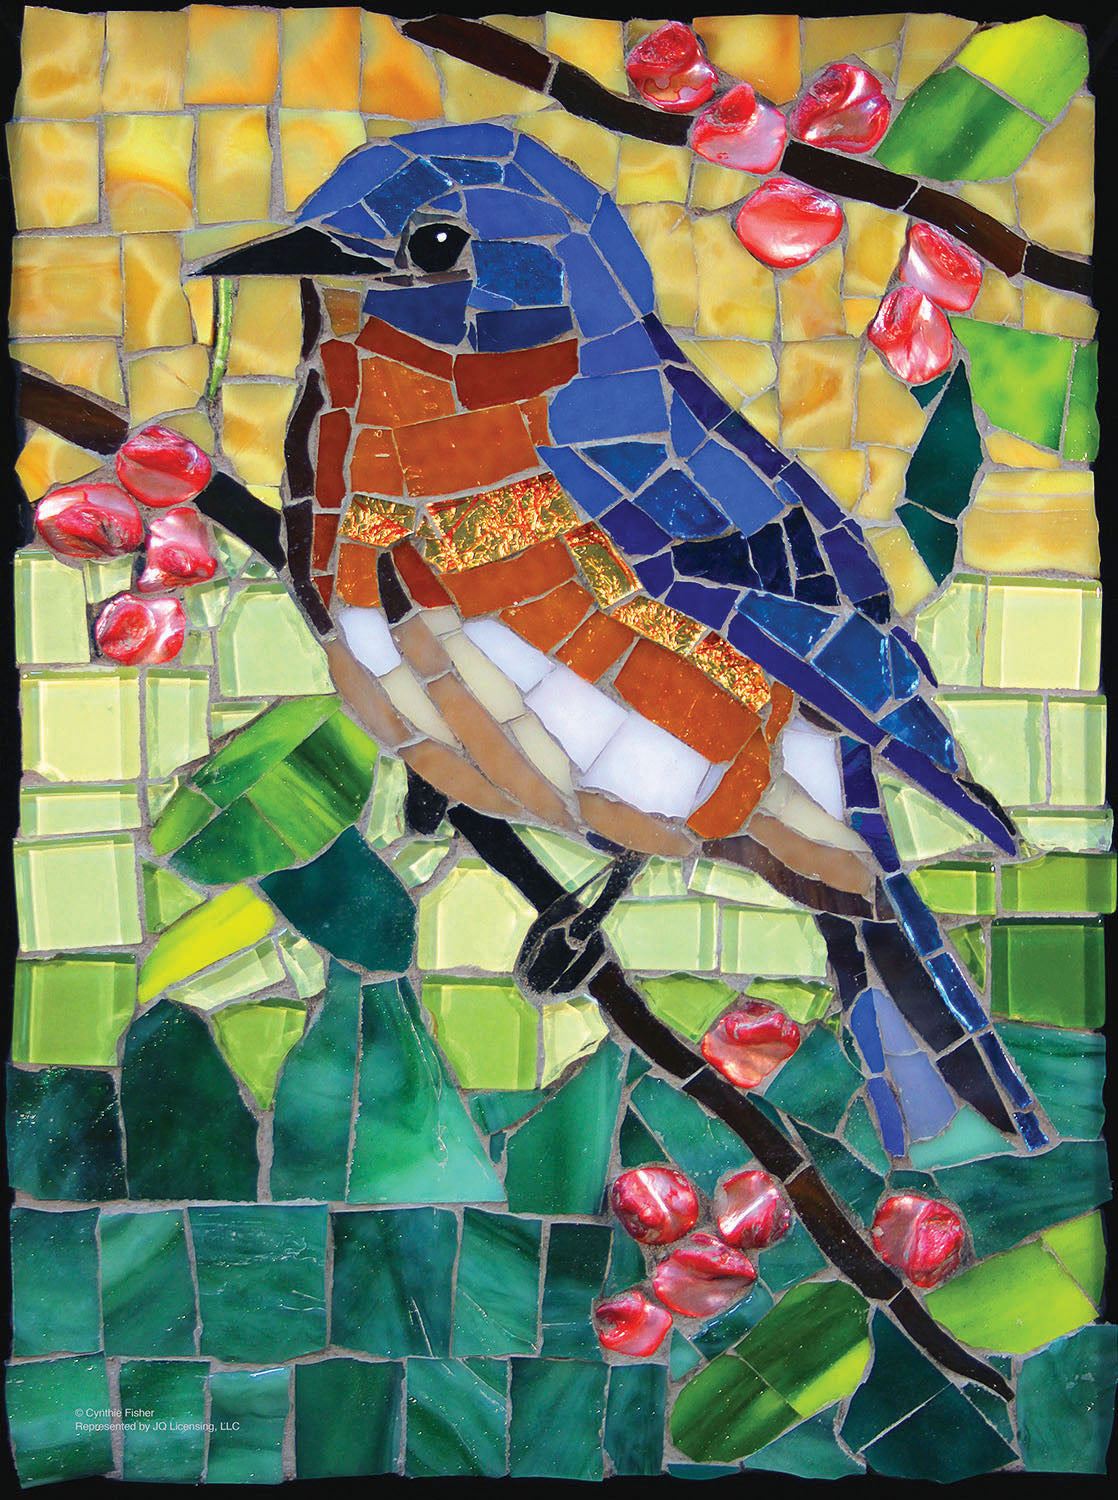 Stained Glass Bluebird 1000 Piece Puzzle - Puzzlicious.com